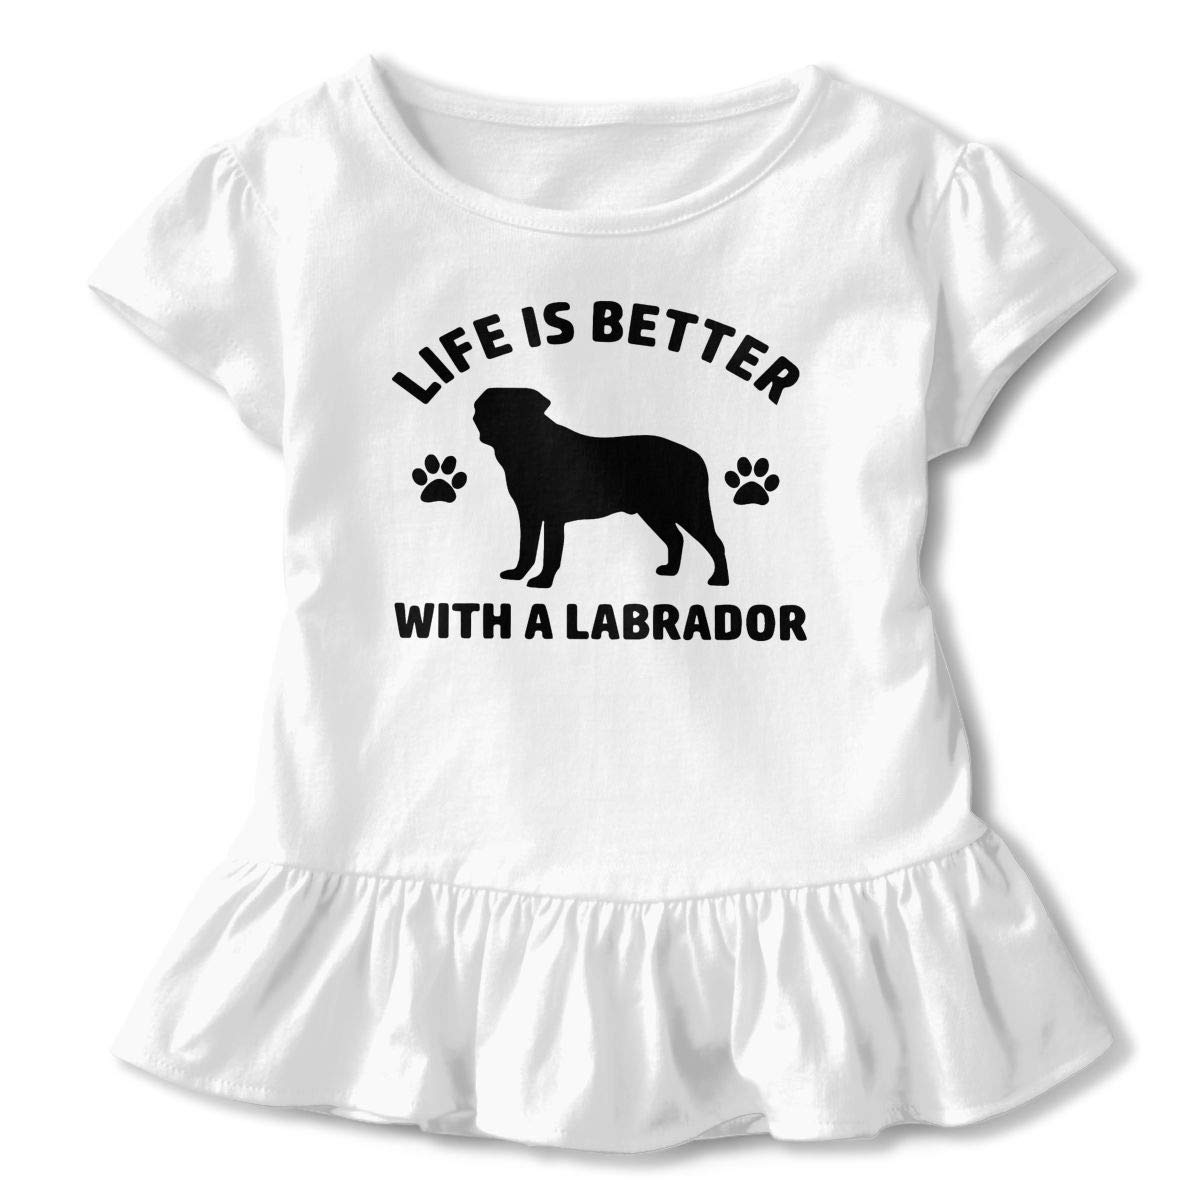 Ruffled Blouse Clothes with Falbala 2-6T PMsunglasses Short Sleeve Life is Better with A Labrador Shirts for Children